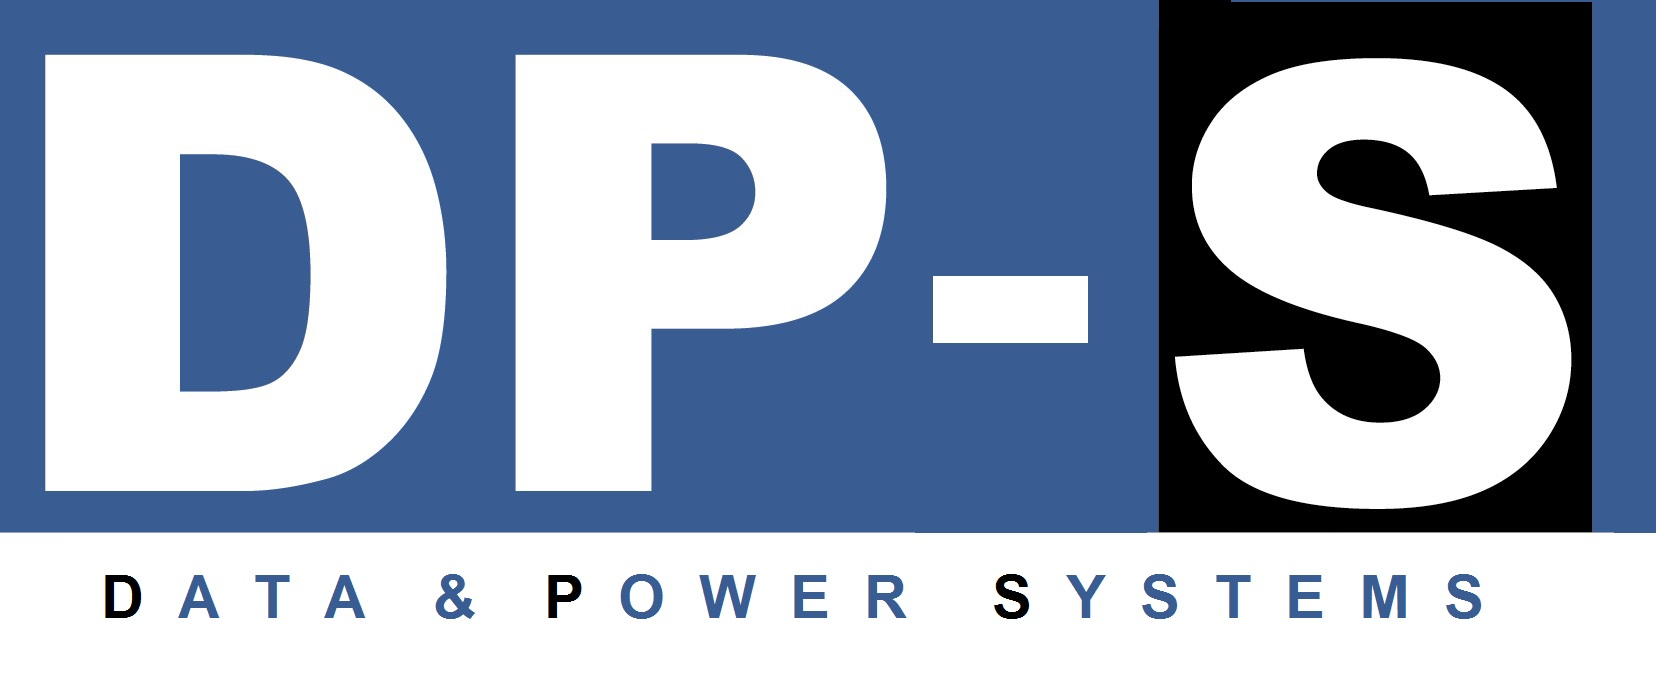 Data & Power Systems